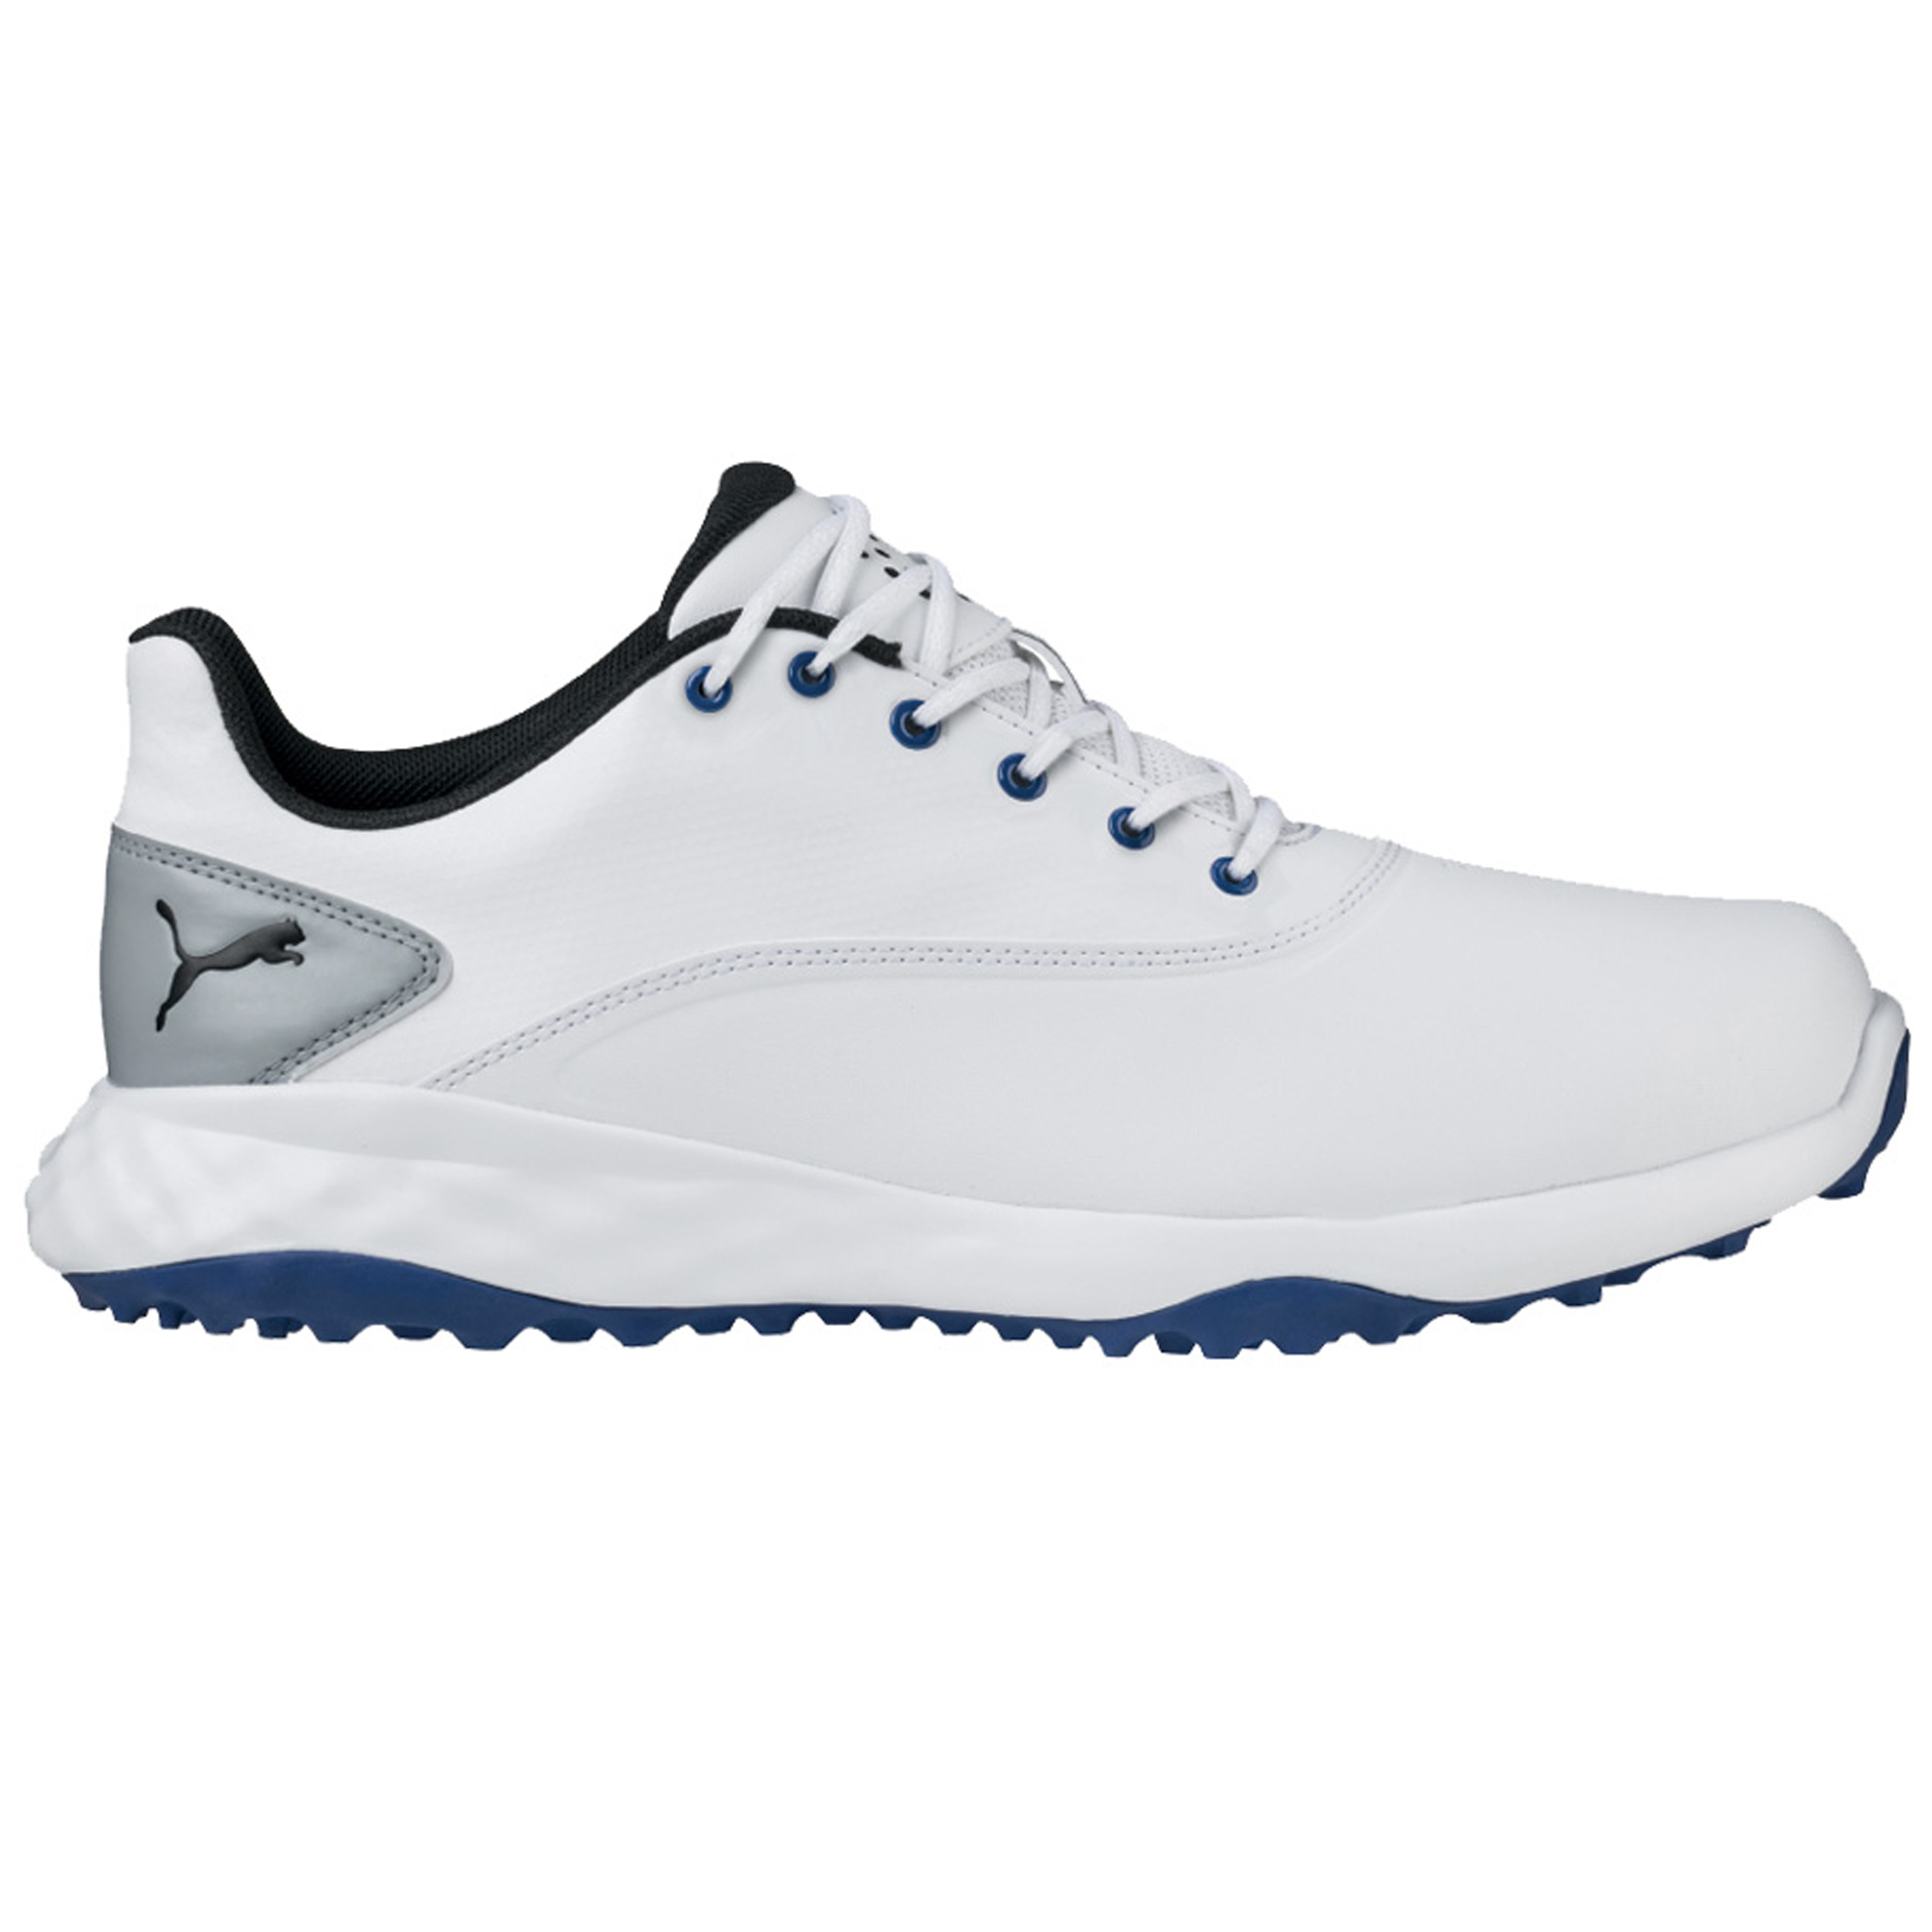 Puma Golf Mens Soft Foam Carbon Rubber Spikeless Waterproof Golf ... 94f82d6cf